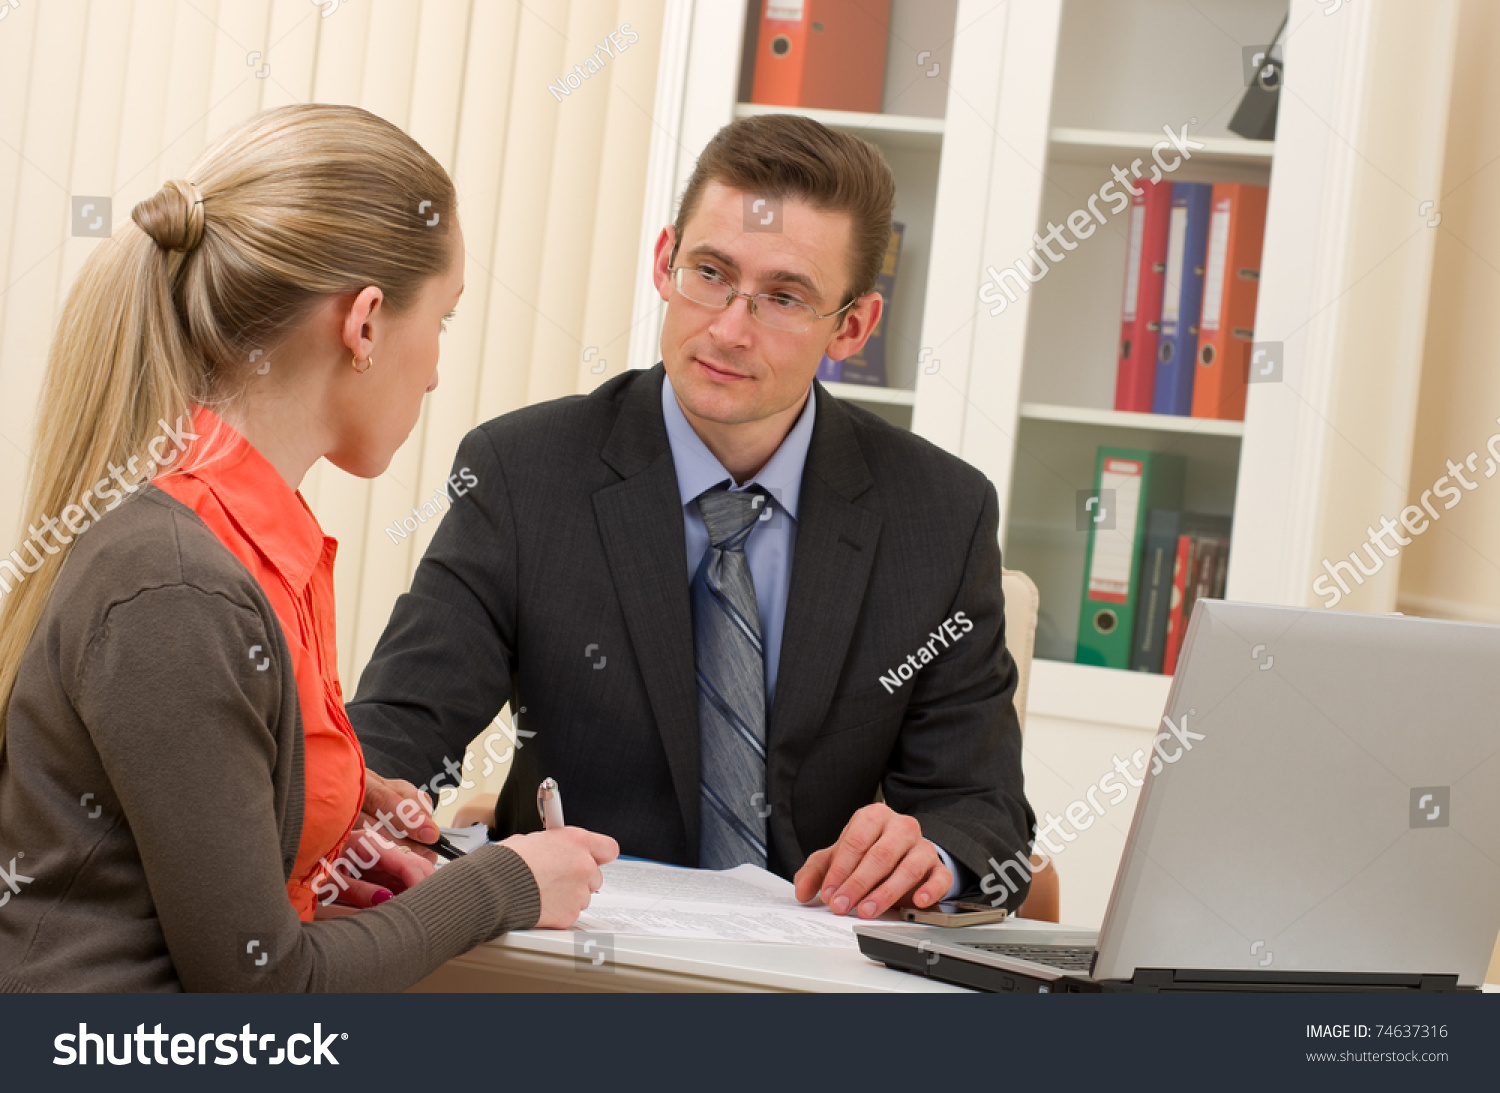 manager man and businessw on interview in the office stock save to a lightbox